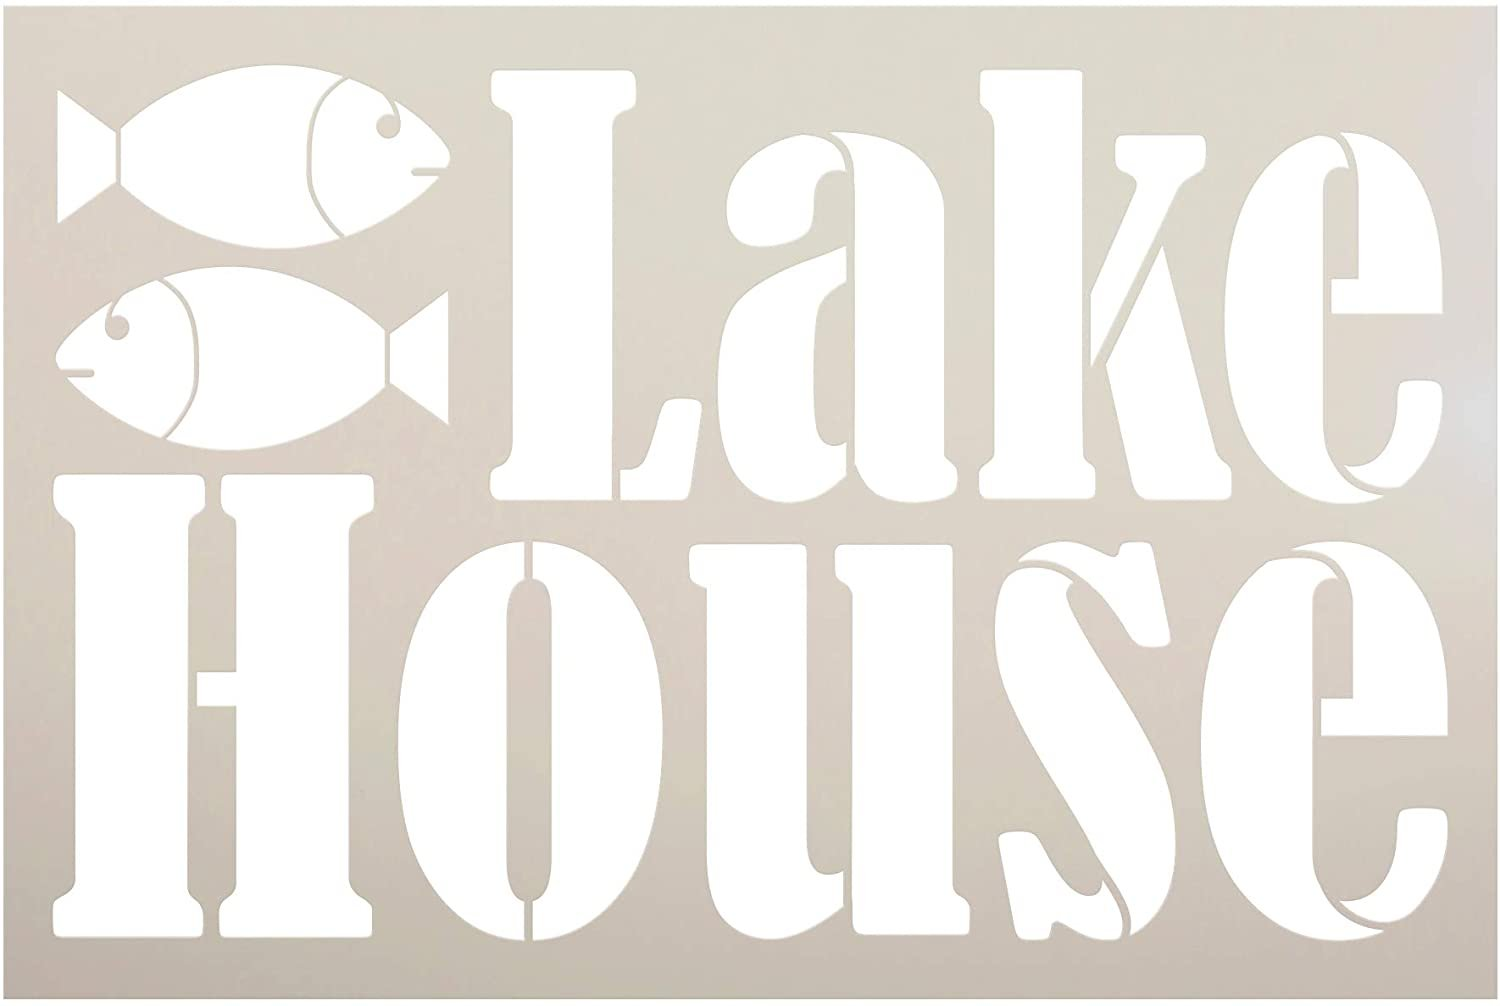 Lake House Stencil by StudioR12   DIY Rustic Fishing Home Decor   Craft & Paint Wood Sign   Reusable Mylar Template   Vacation Nature Adventure Gift - Porch   Select Size